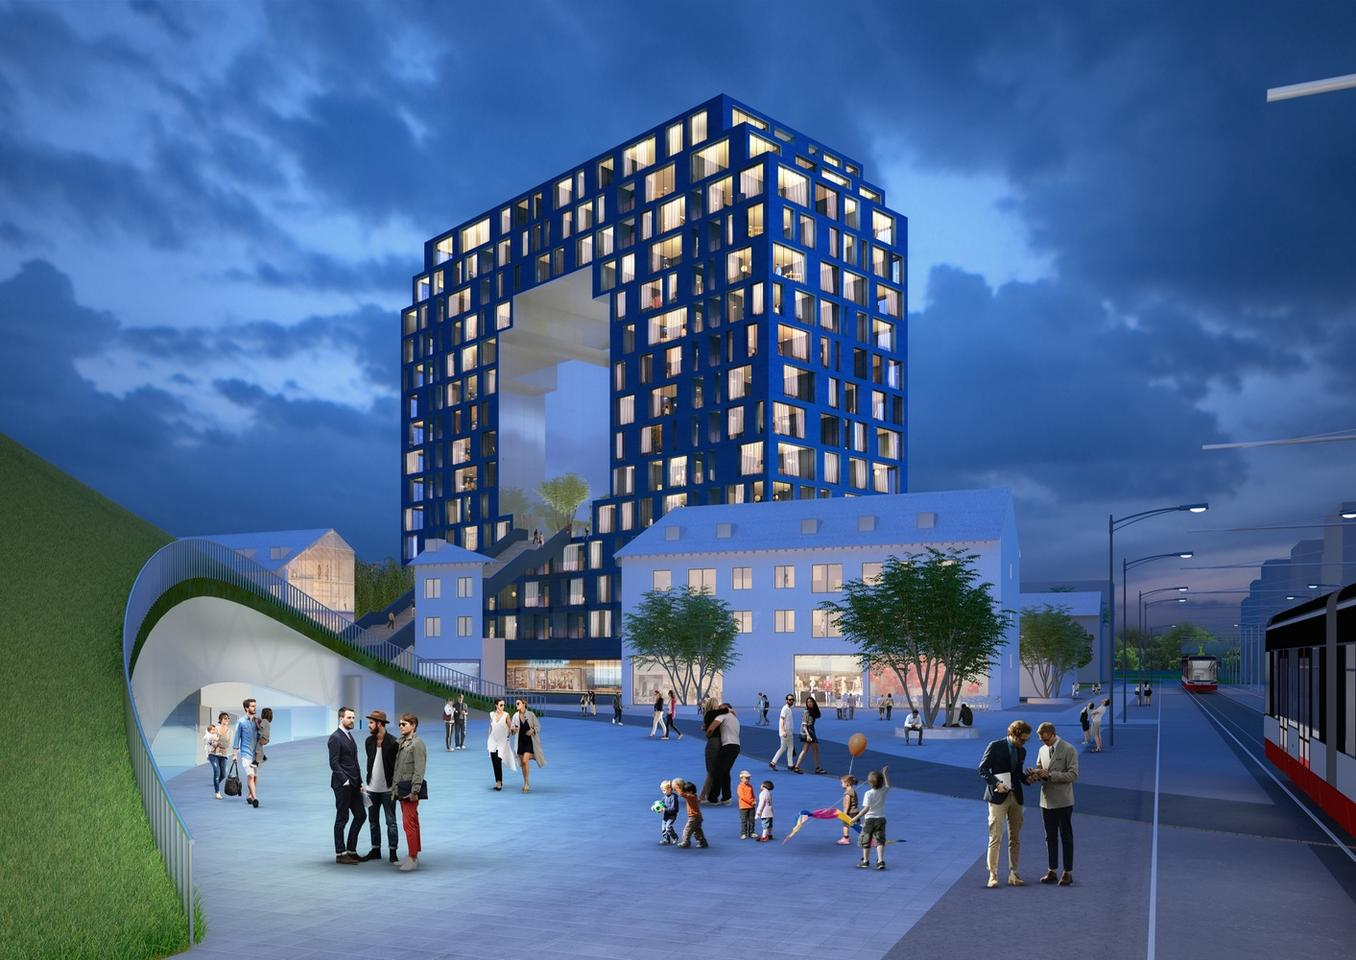 MVRDV iscollaborating on the Franklin Mitteproject withhaascookzemmrich STUDIO2050 and AS&P